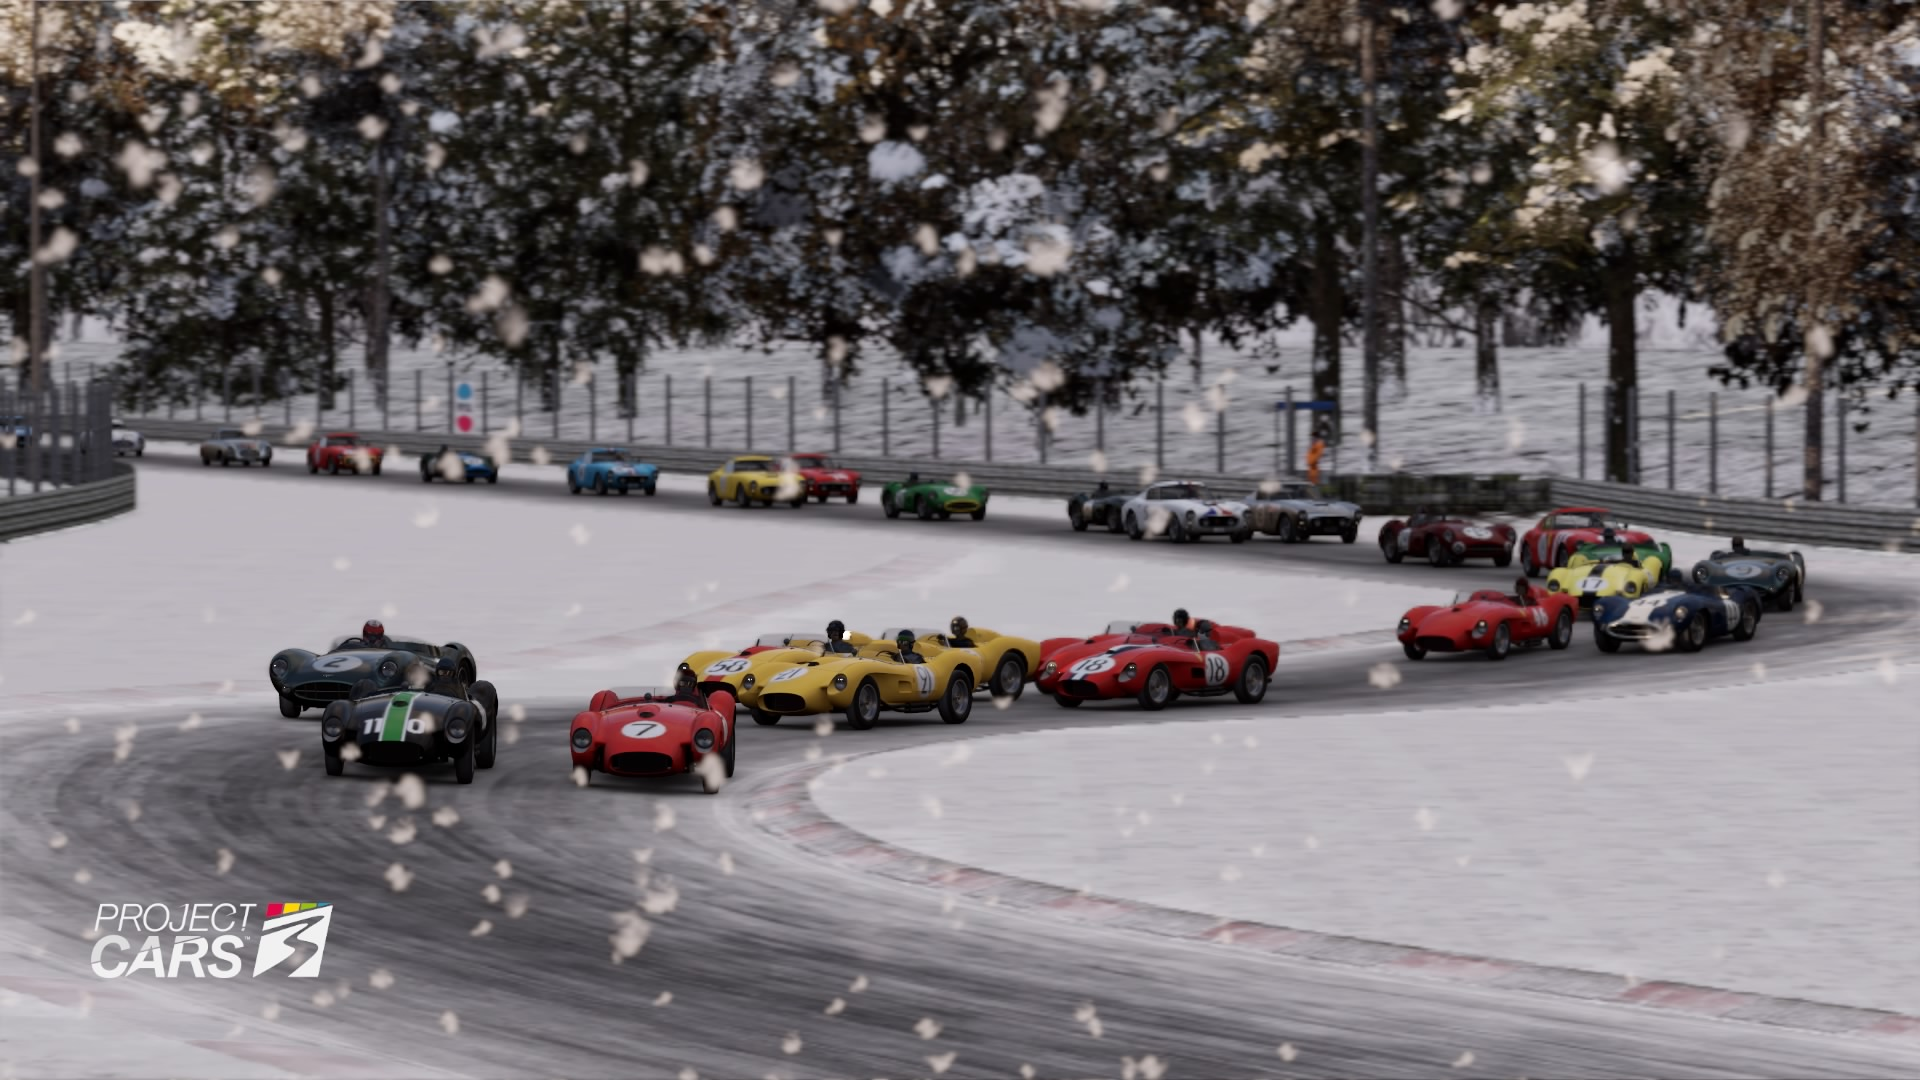 Project Cars 3 20200822114800